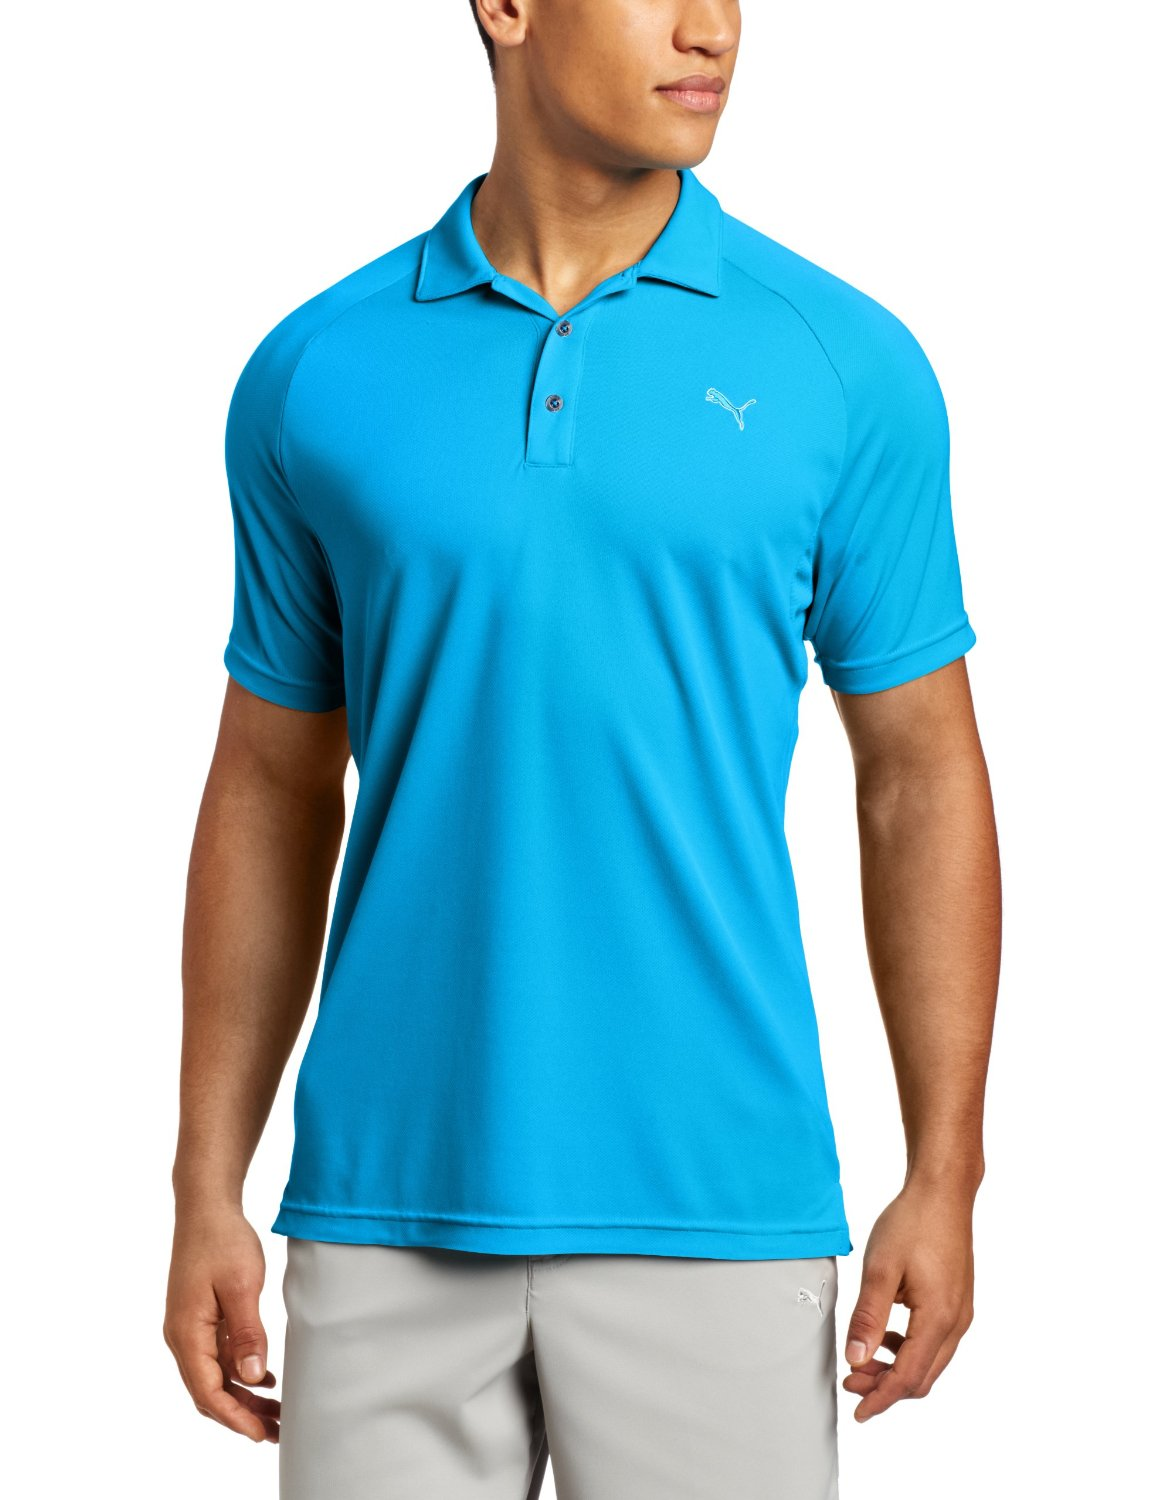 Best Golf Shirts for Men